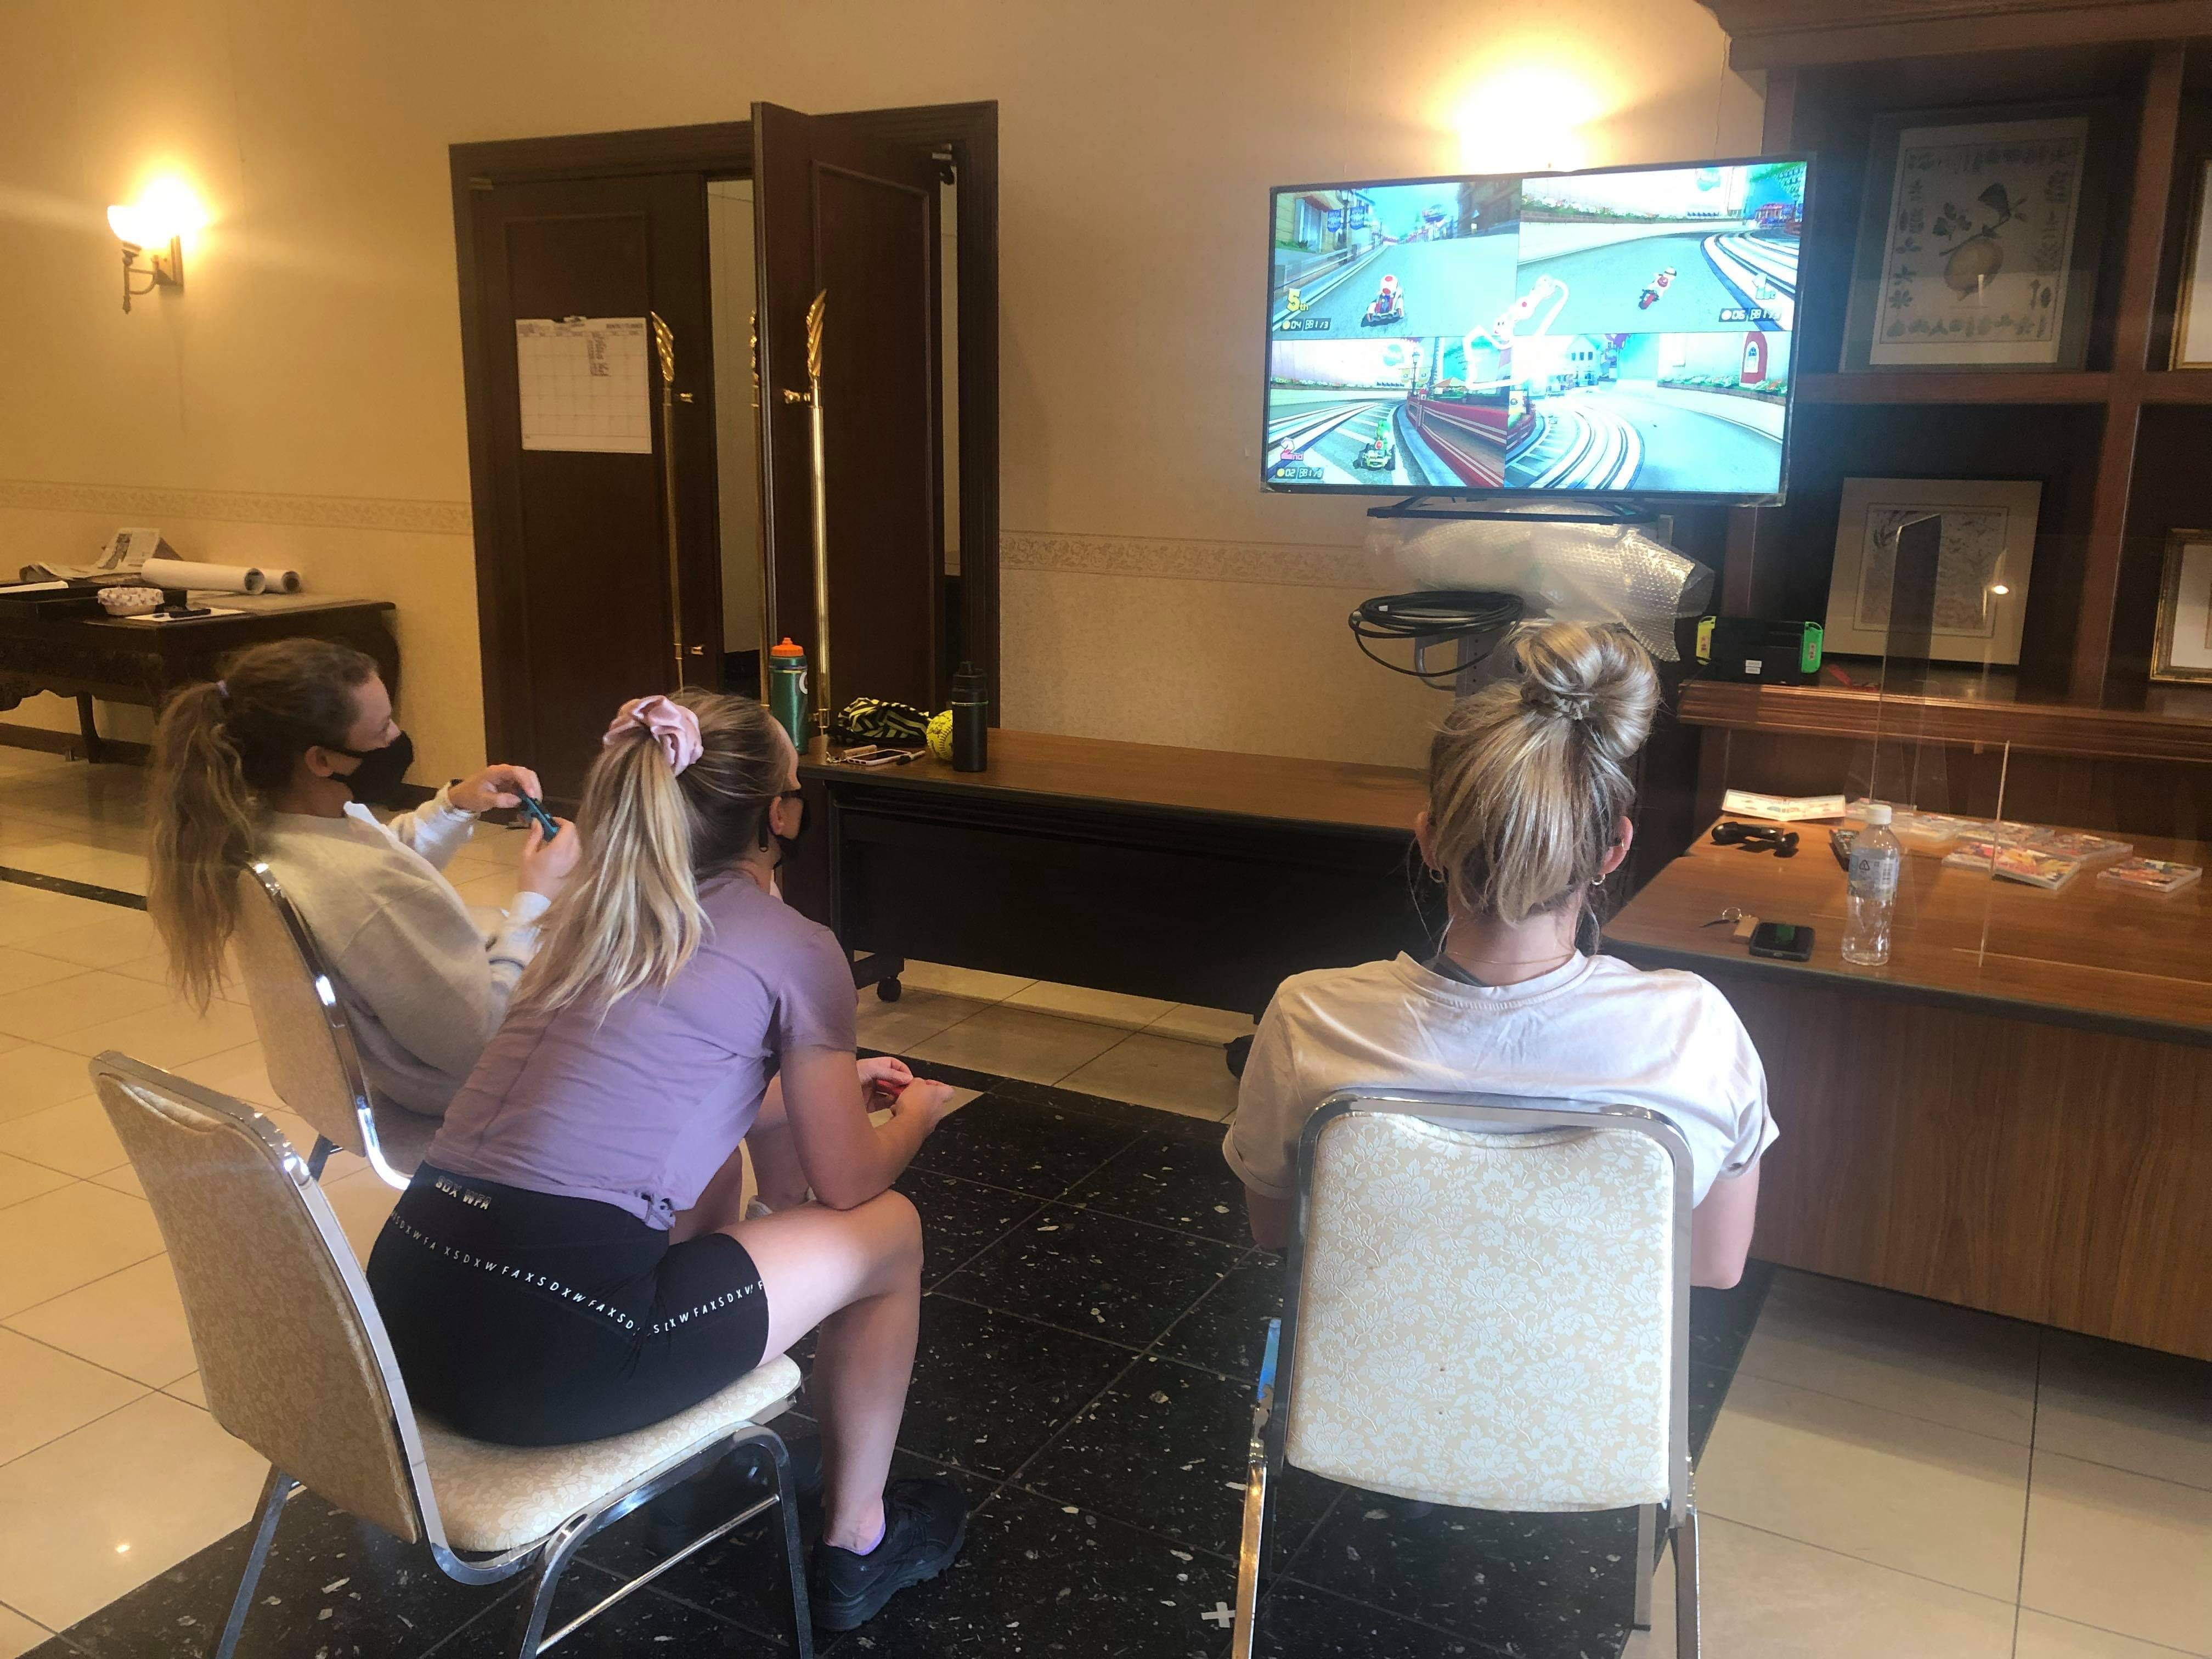 Australian softball players passing time by playing Nintendo Switch in their hotel in Ota, Japan.